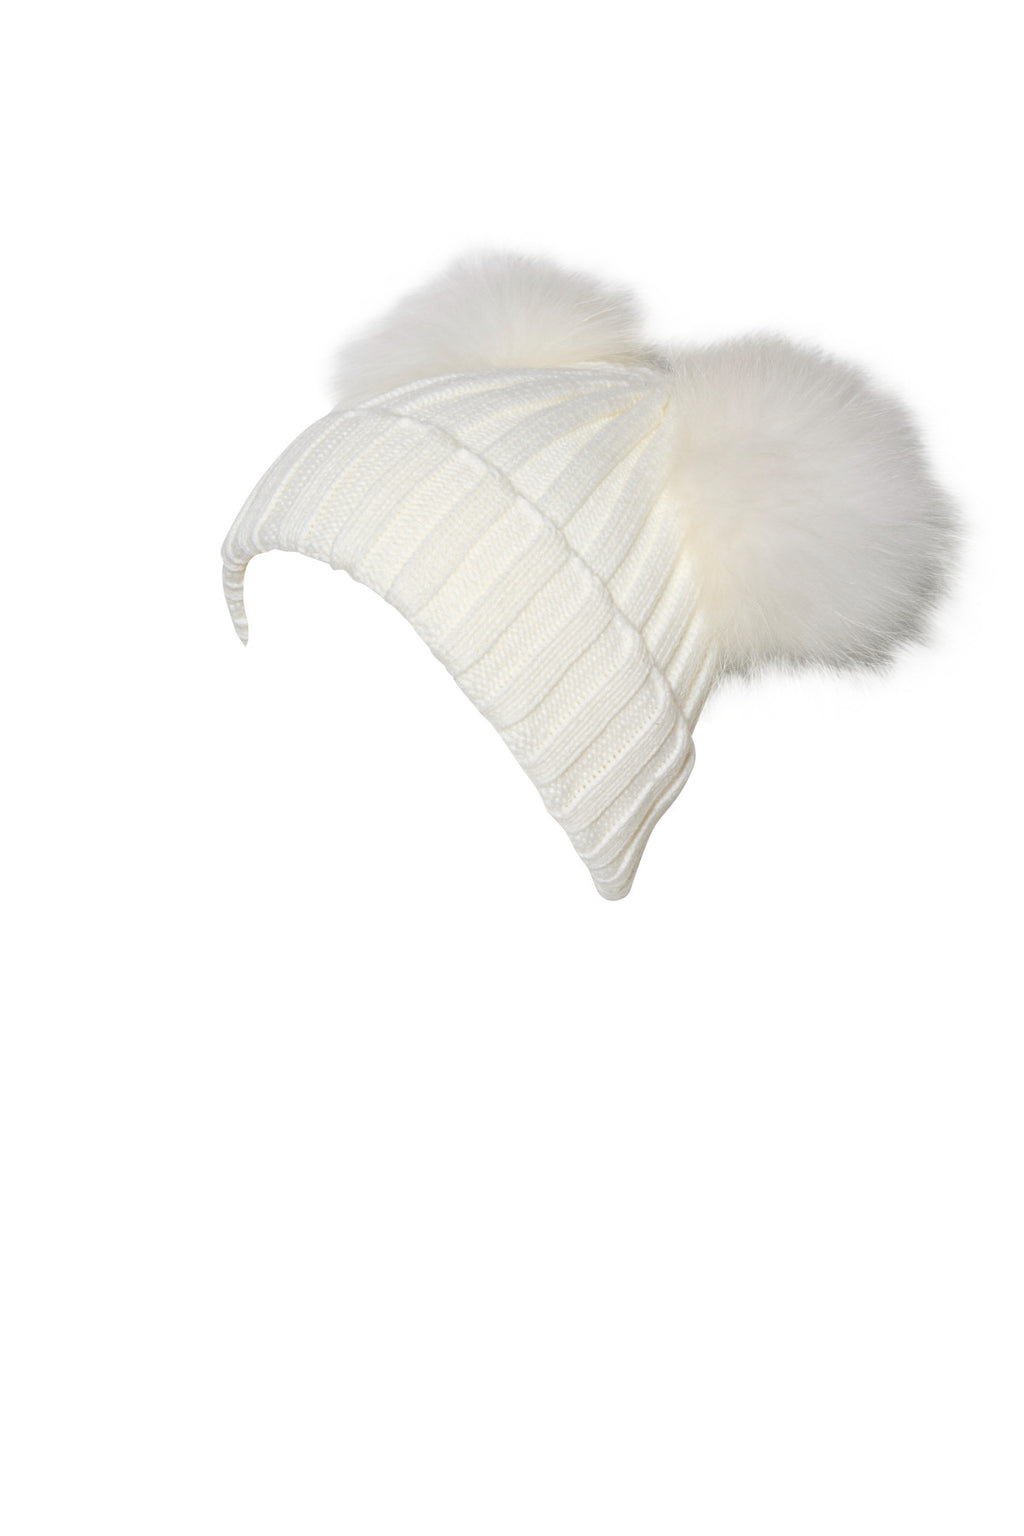 Adult White Raccoon Fur Double Pom Pom Hat - White - Pic Pop